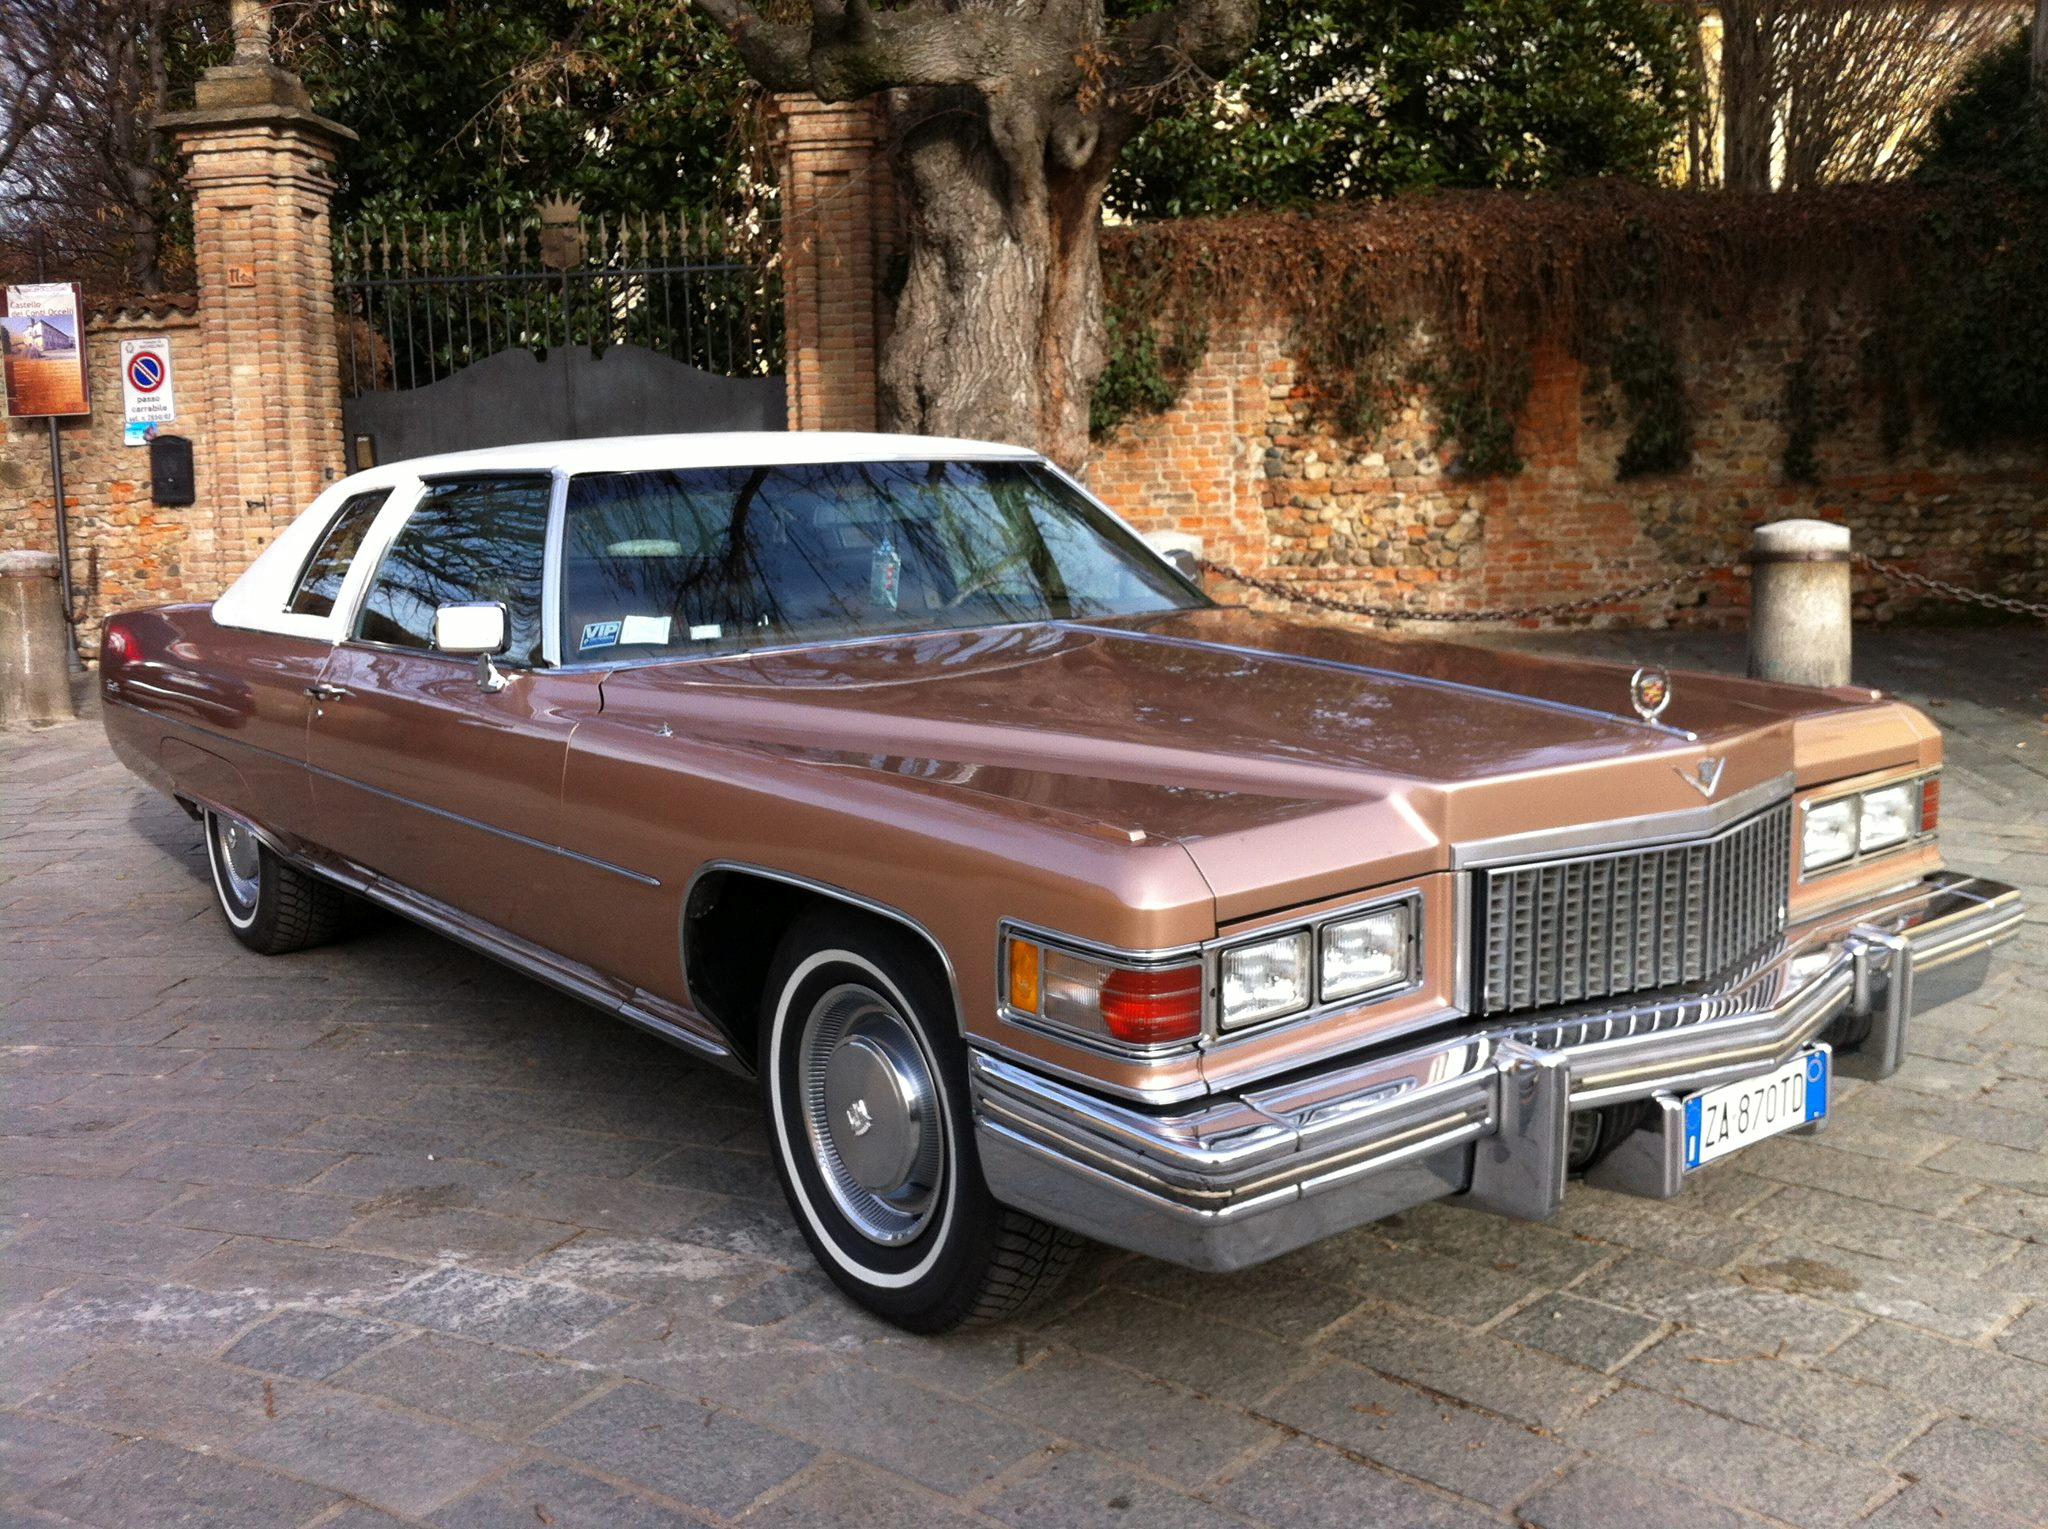 File:1975 Cadillac Coupe Deville fvr.jpg - Wikimedia Commons